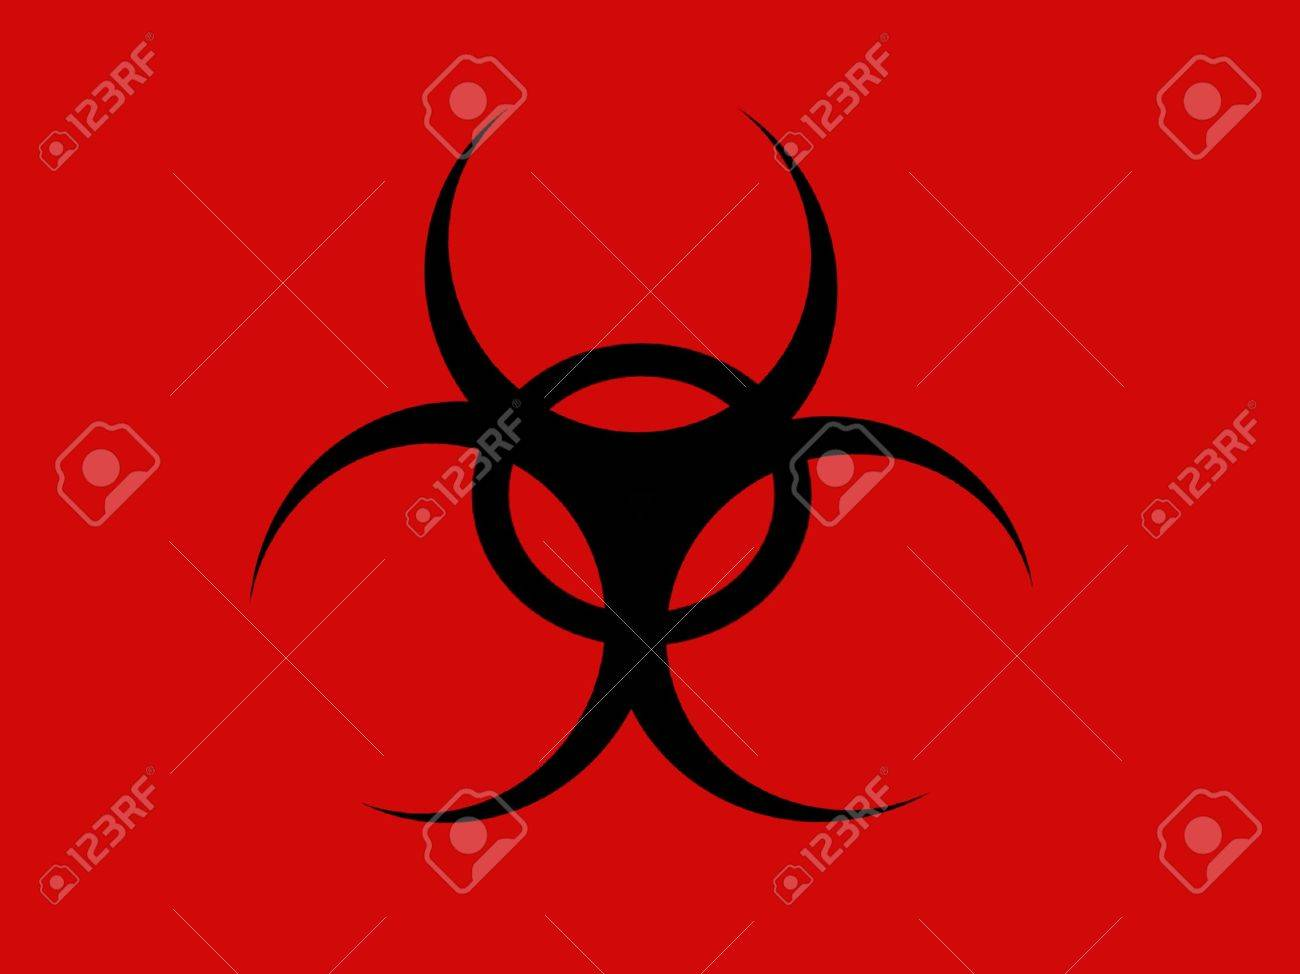 Biological Hazard Symbol Or Icon Stock Photo Picture And Royalty